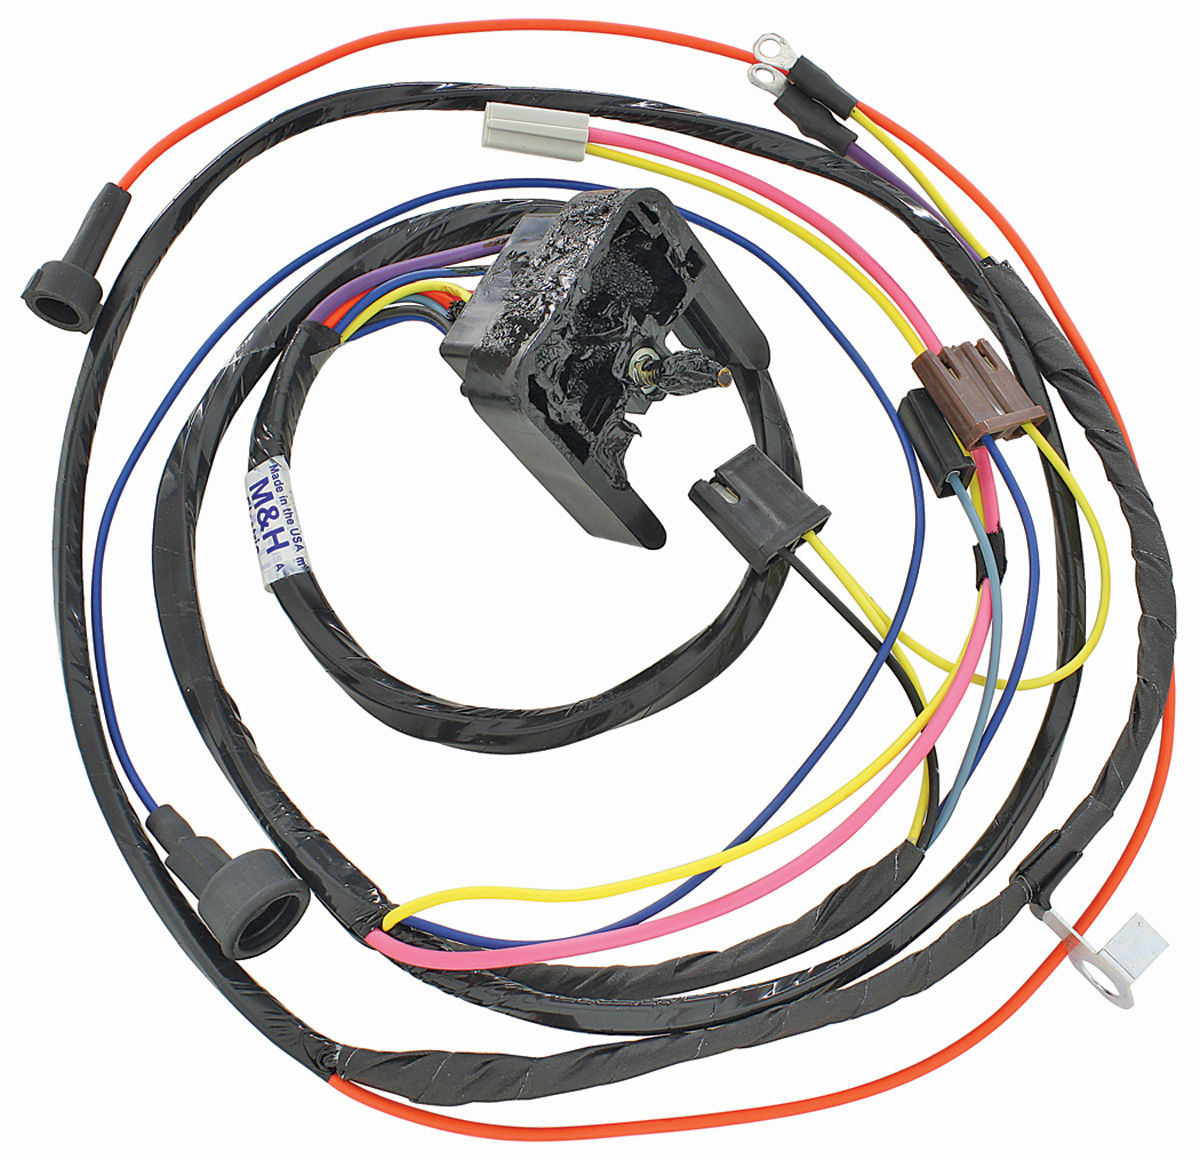 38947 lrg?v=102520130818 m&h 1968 69 chevelle engine harness 396 hei w warning lights 1966 chevelle wiring diagram at creativeand.co